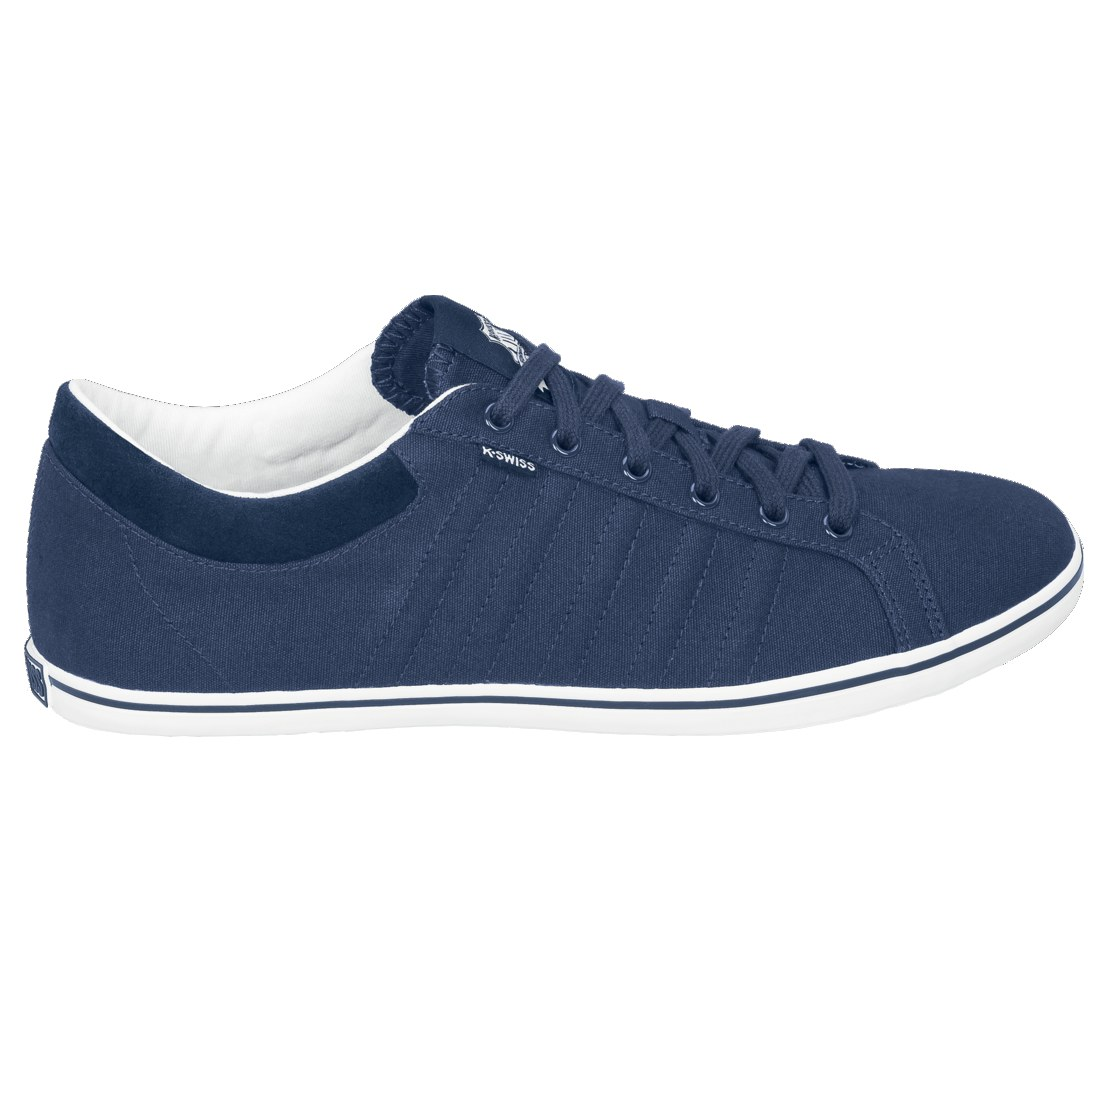 k swiss hof iv t vnz canvas schuhe sneaker turnschuhe herren diverse farben ebay. Black Bedroom Furniture Sets. Home Design Ideas